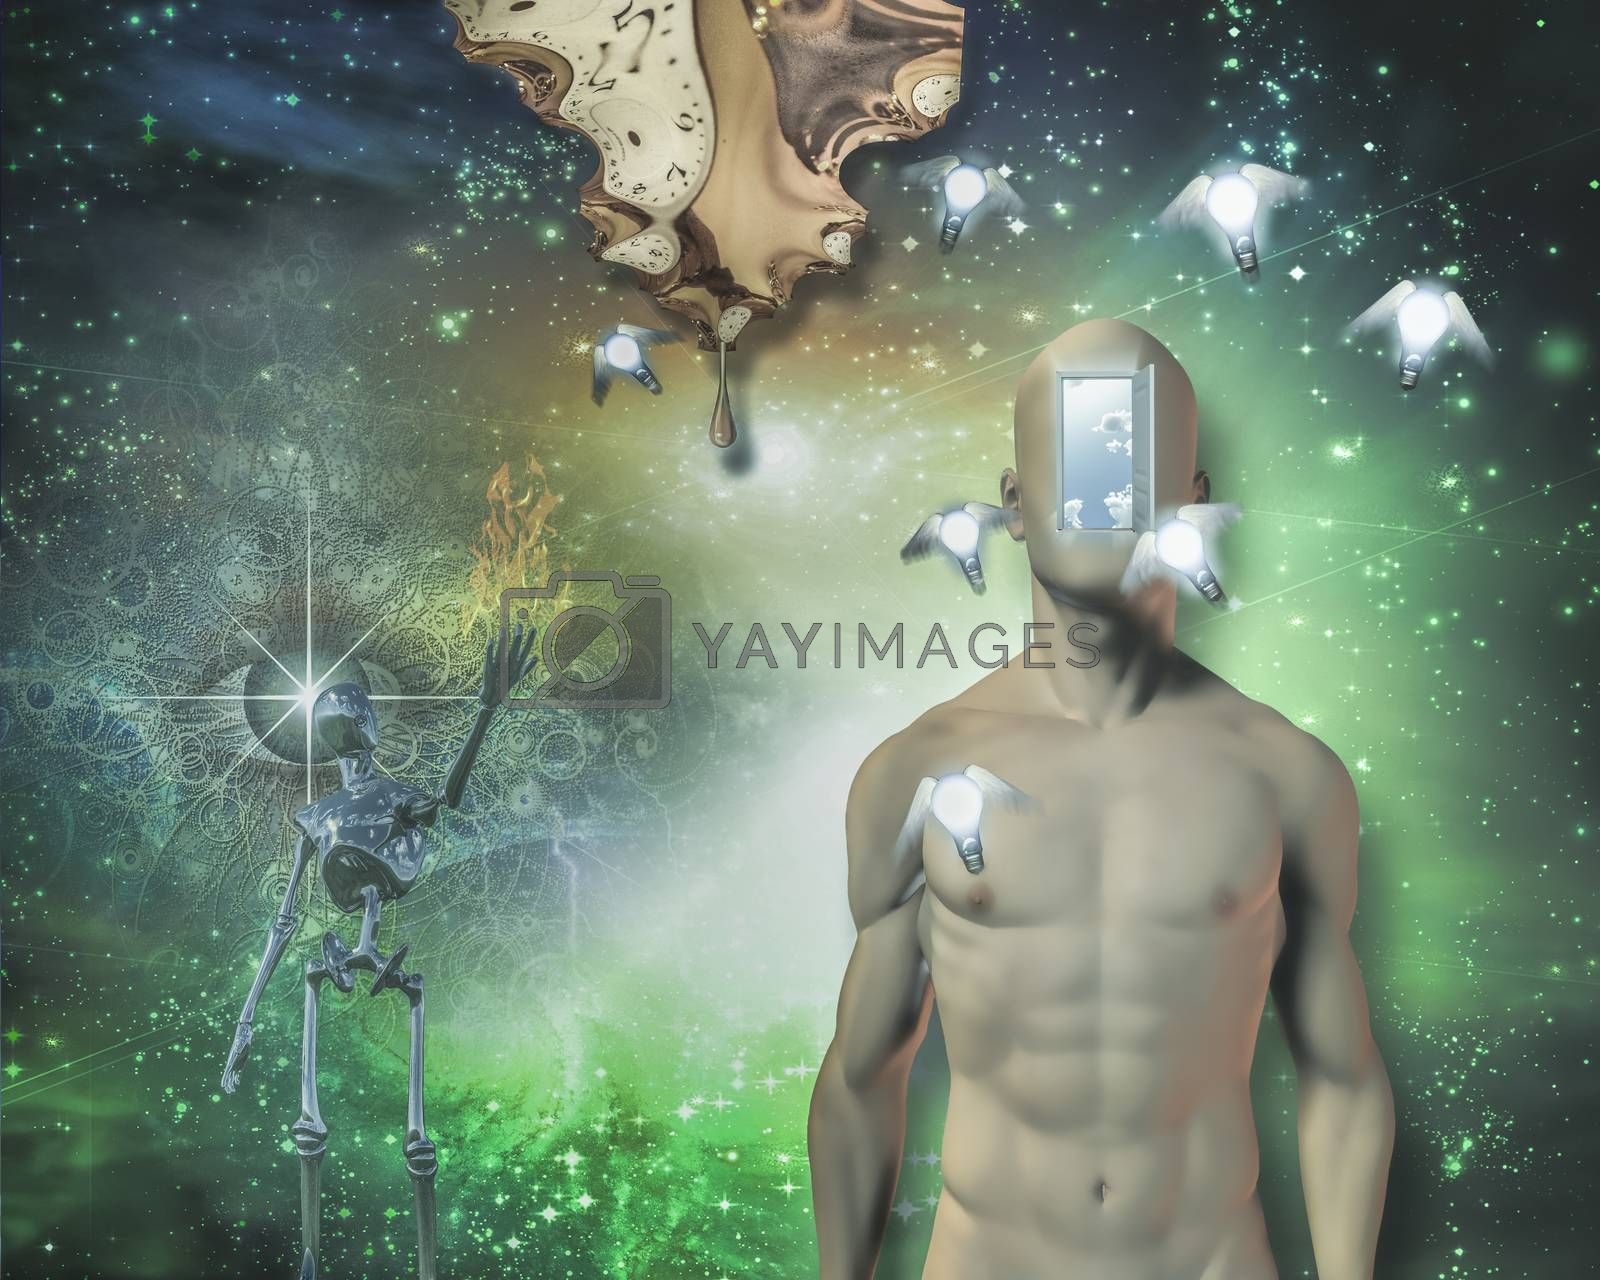 Man open door in face, winged light bulbs, warped time drips, gleaming robot, large flame, watchful eye and further still is deep space. 3D rendering